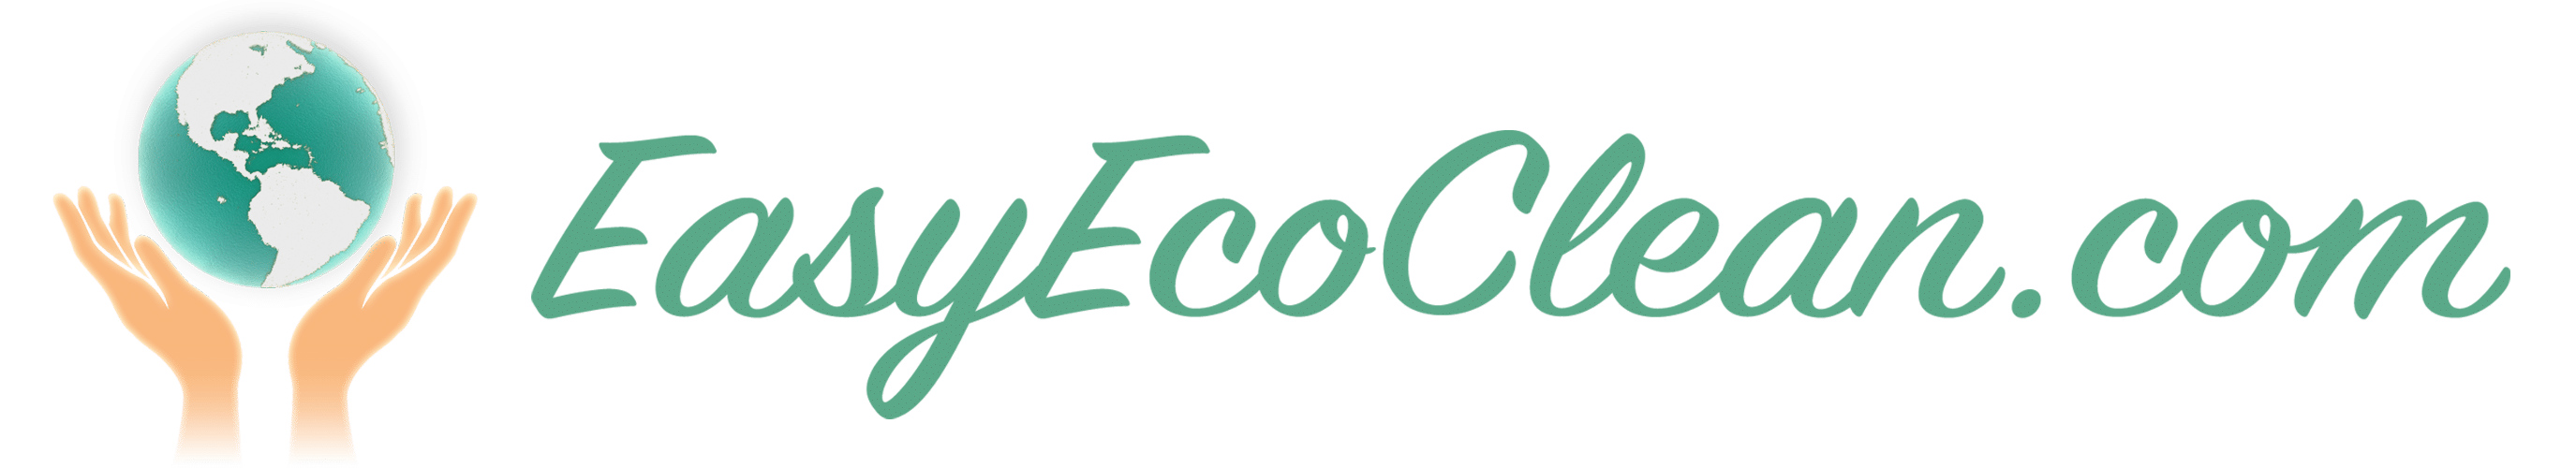 EasyEcoClean logo with hands gently holding earth